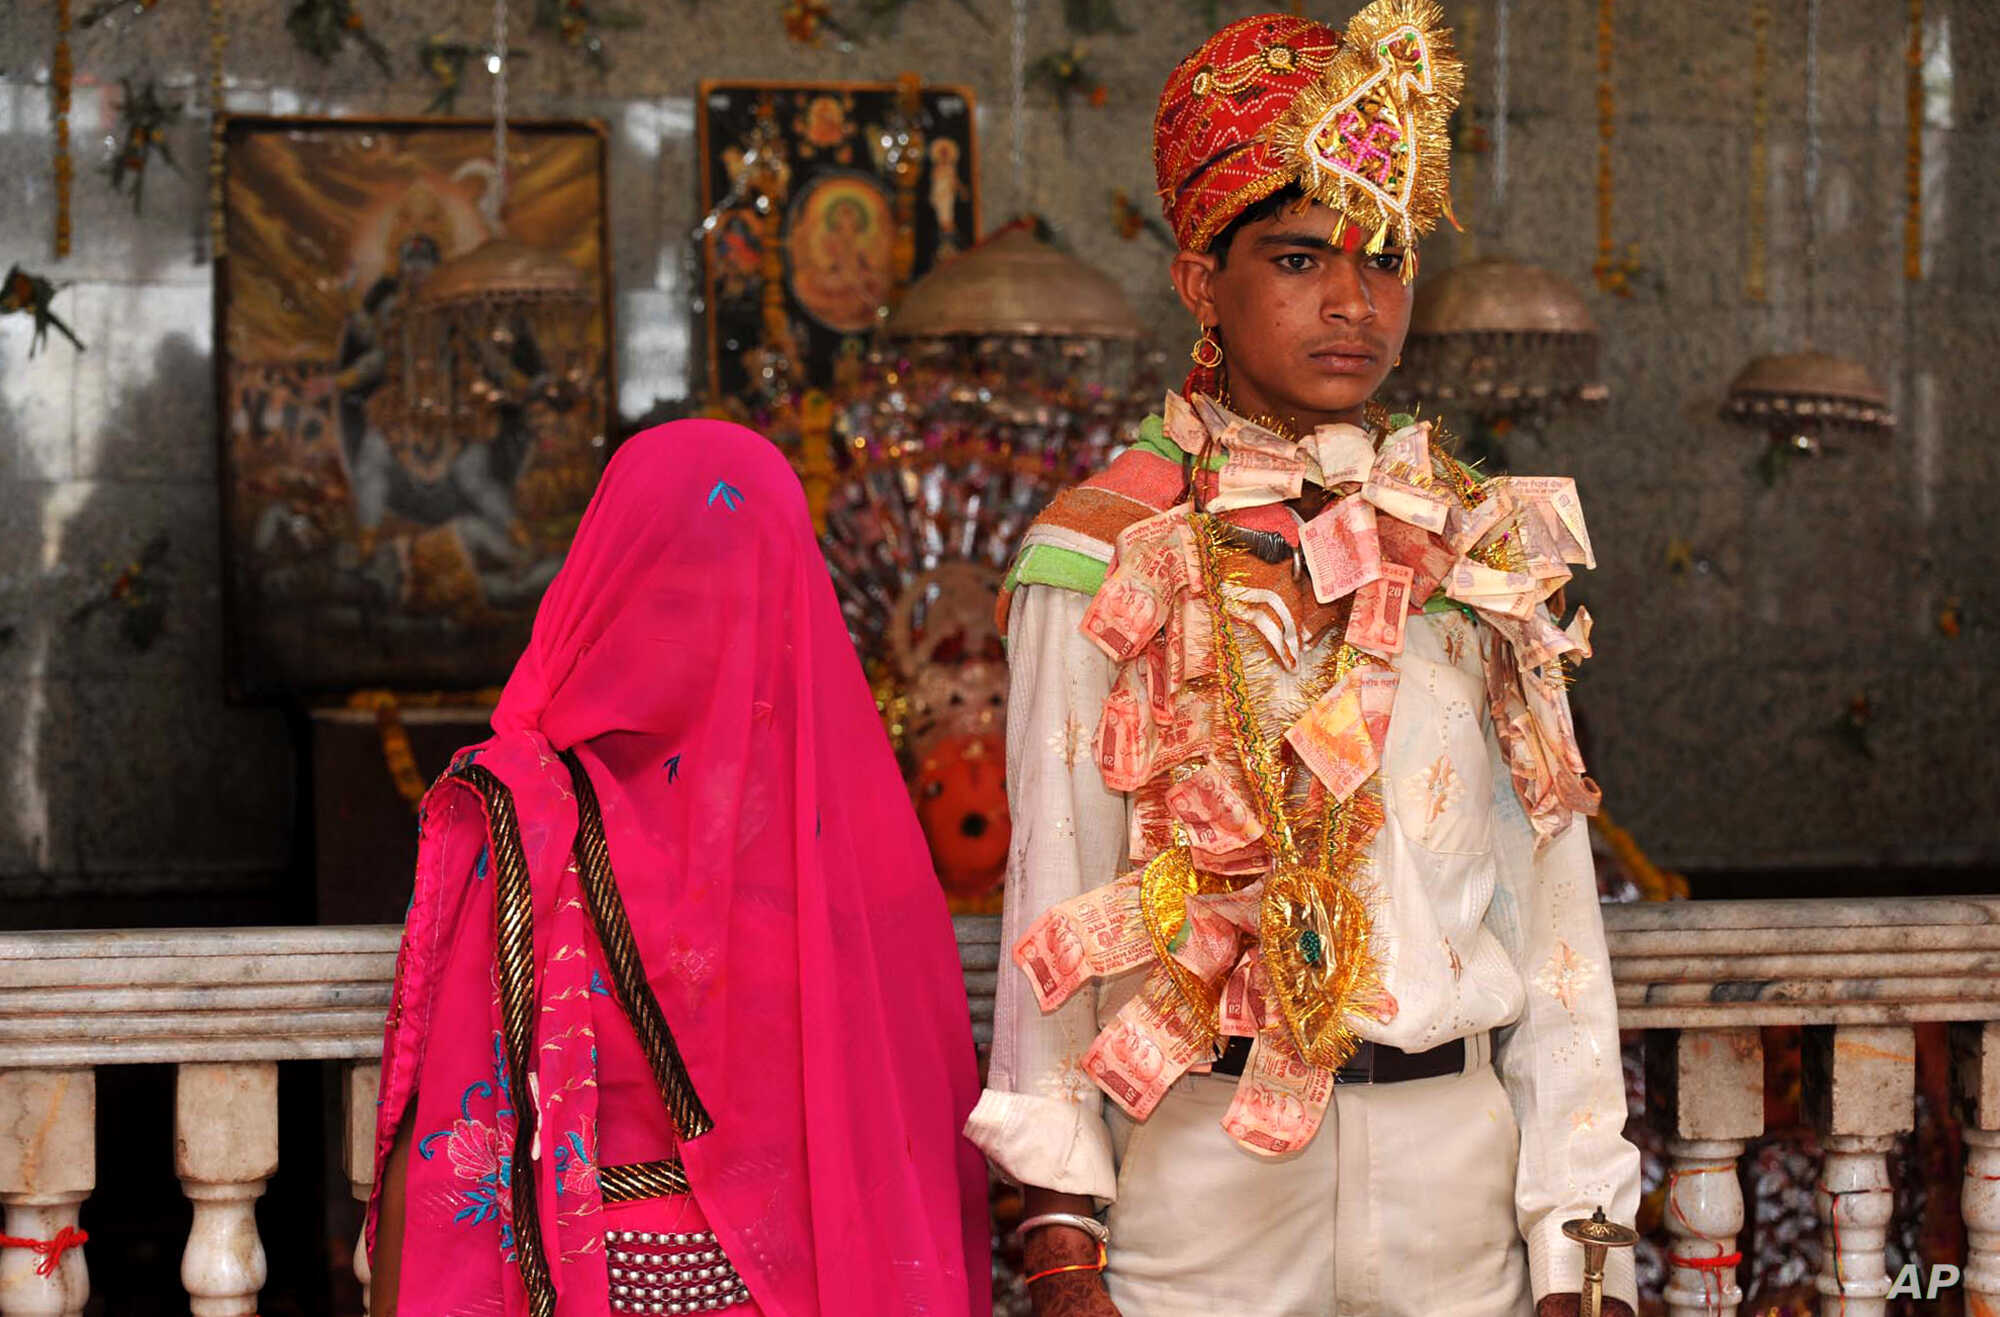 Newly wed Mamta Bai, 12, and her husband Bablu, 14, stands inside a temple in Rajgarh, about 155 kilometers (96 miles) from Bhopal, India, May 6, 2011.